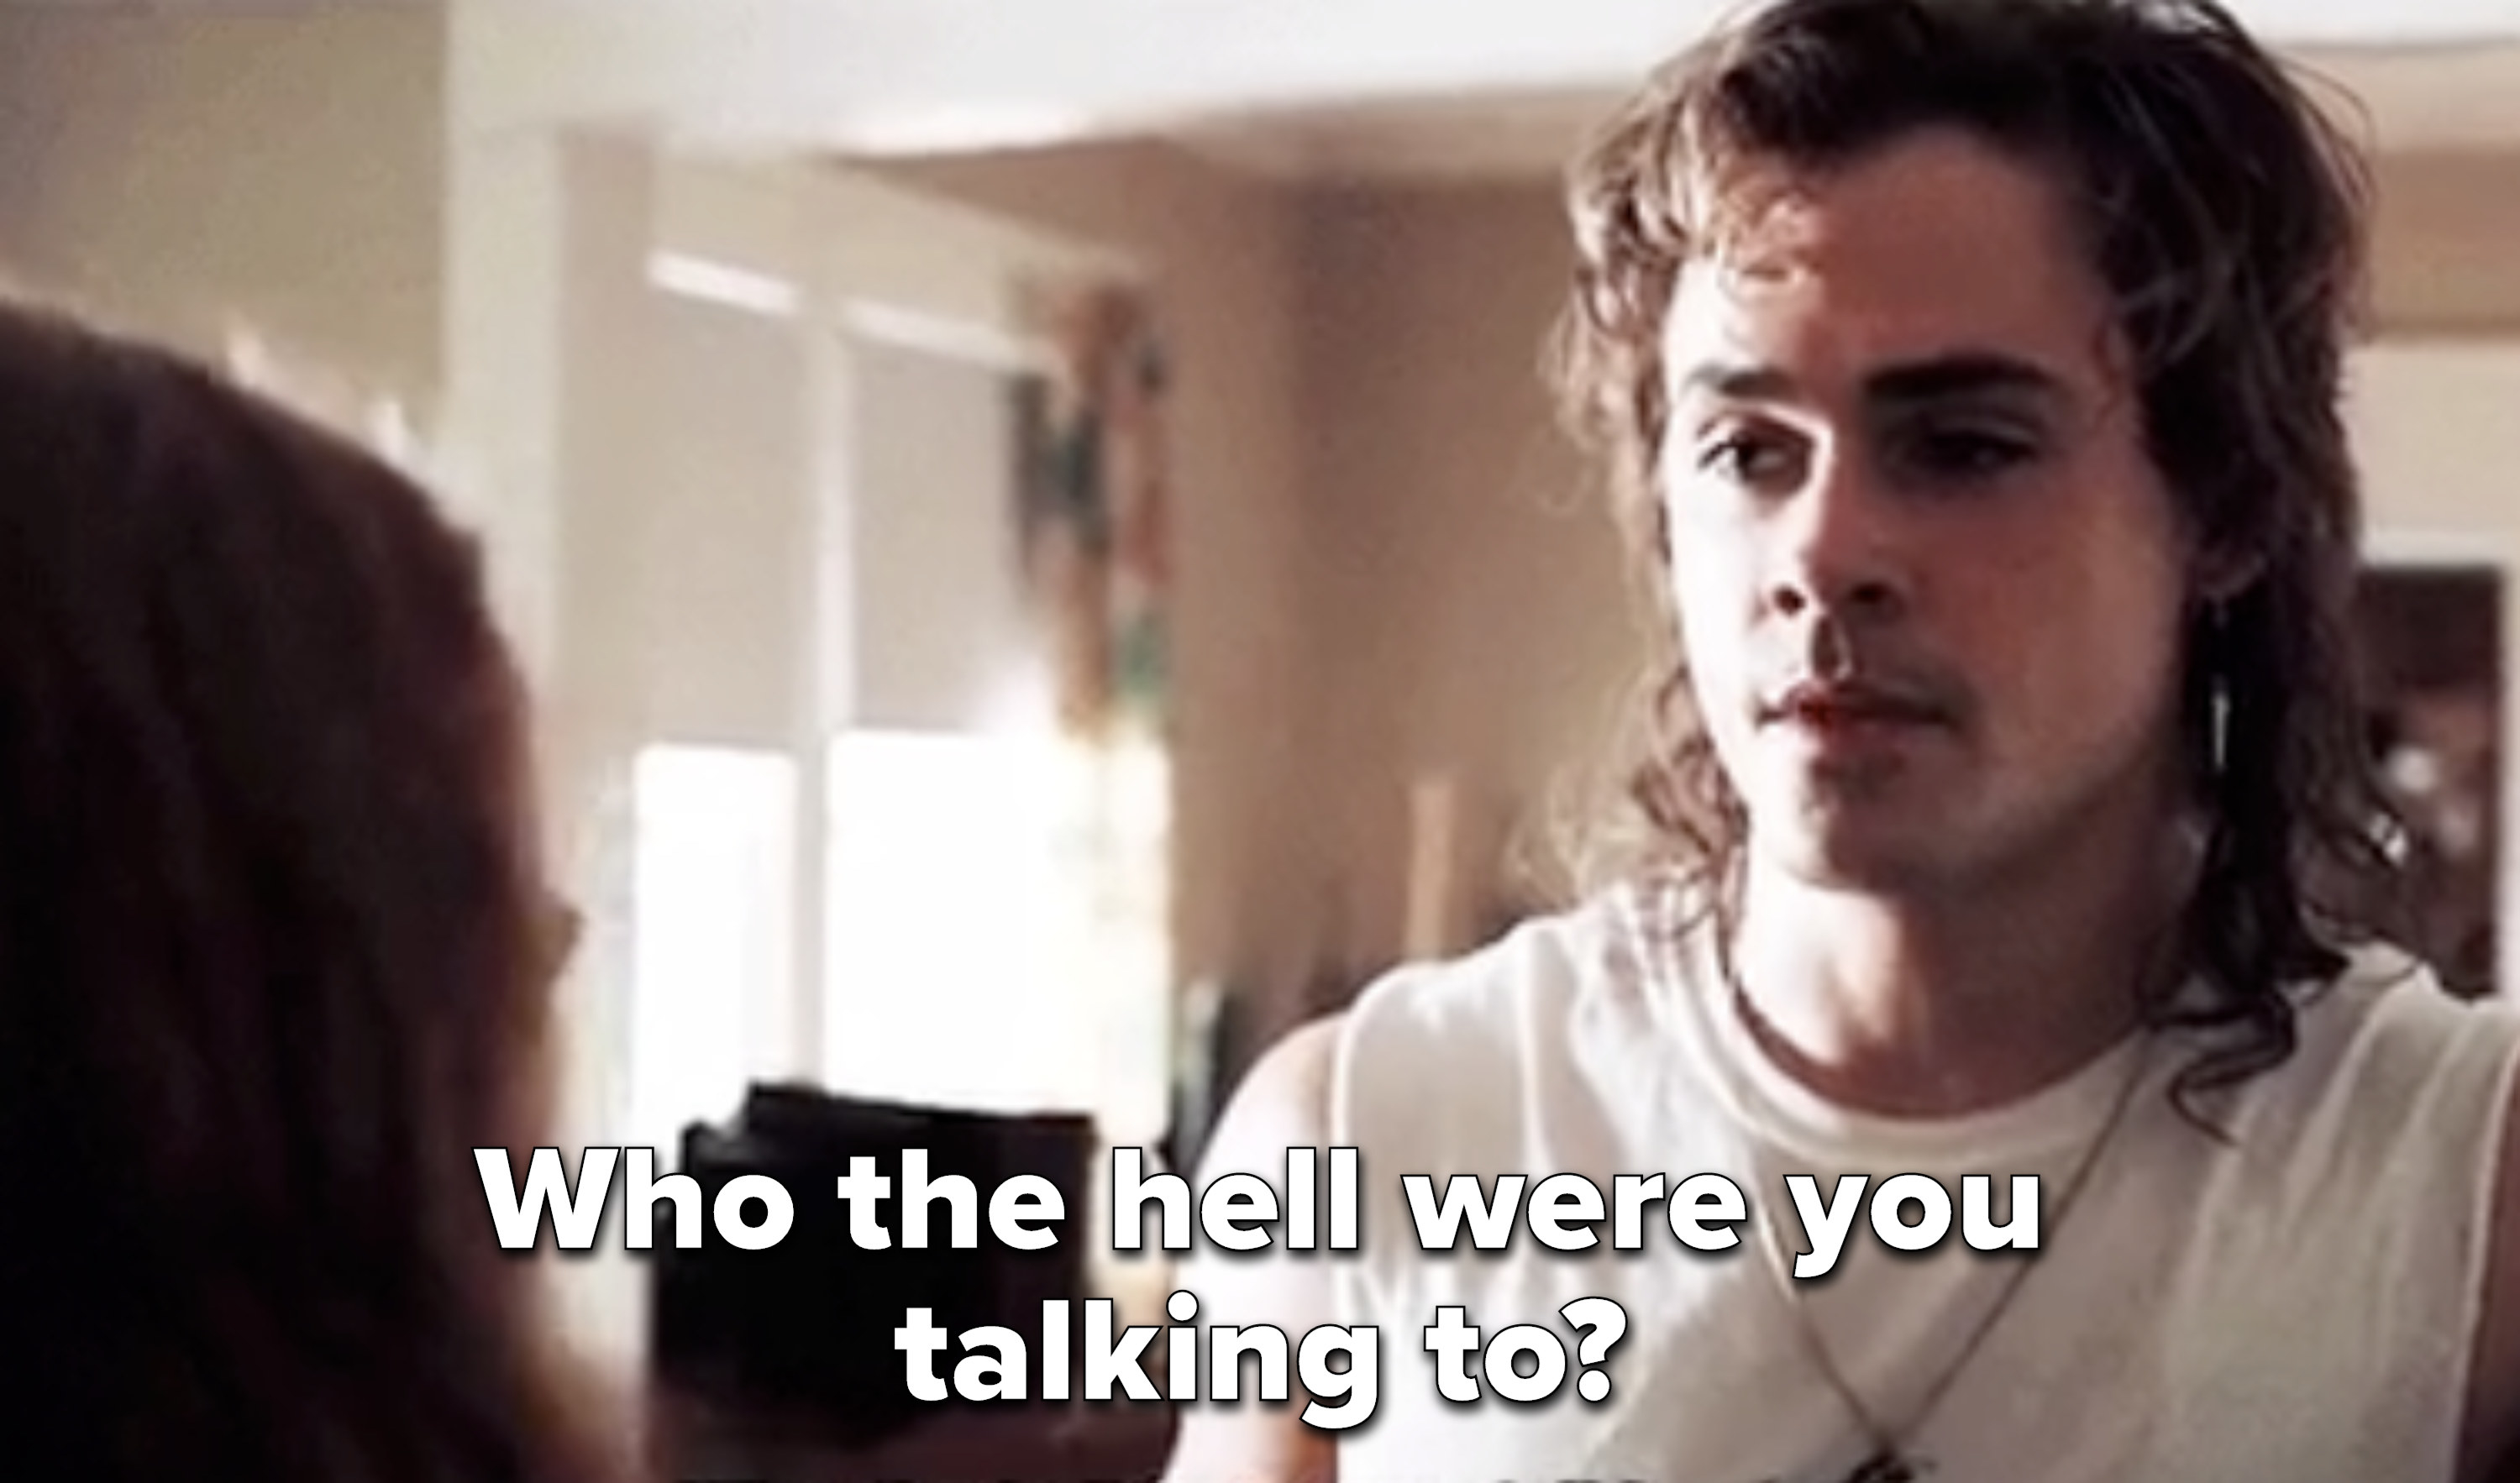 Billy asks Max who the hell she was talking to